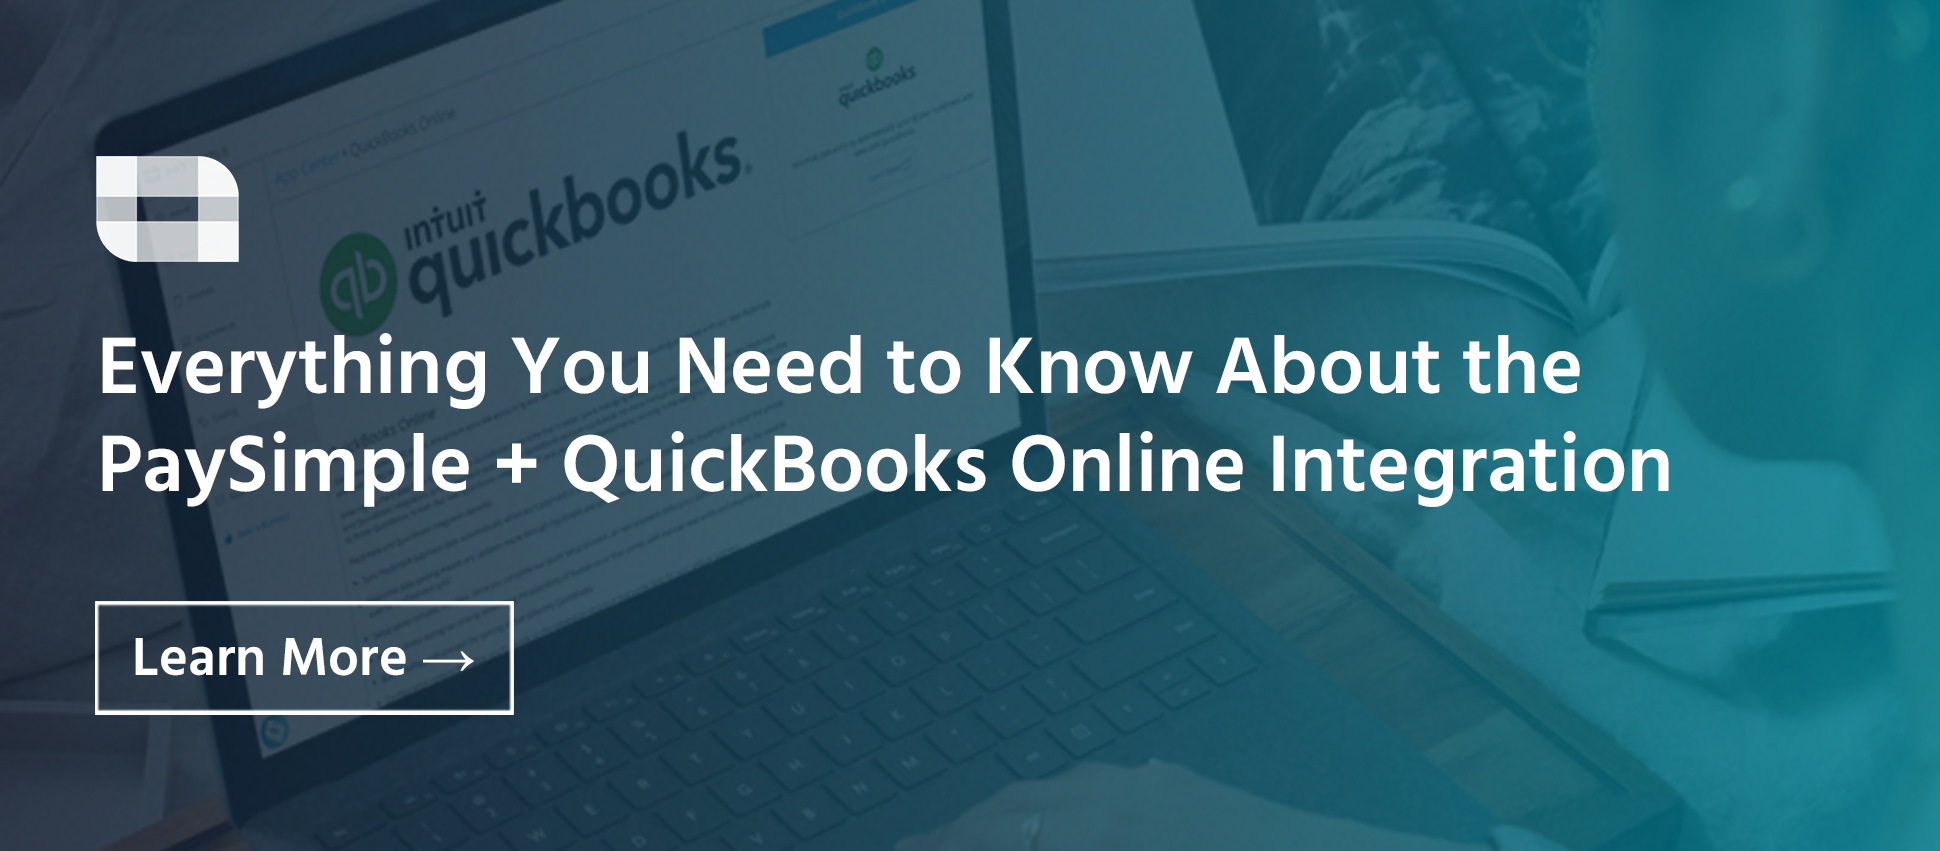 Everything you need to know about the paysimple + quickbooks online integration